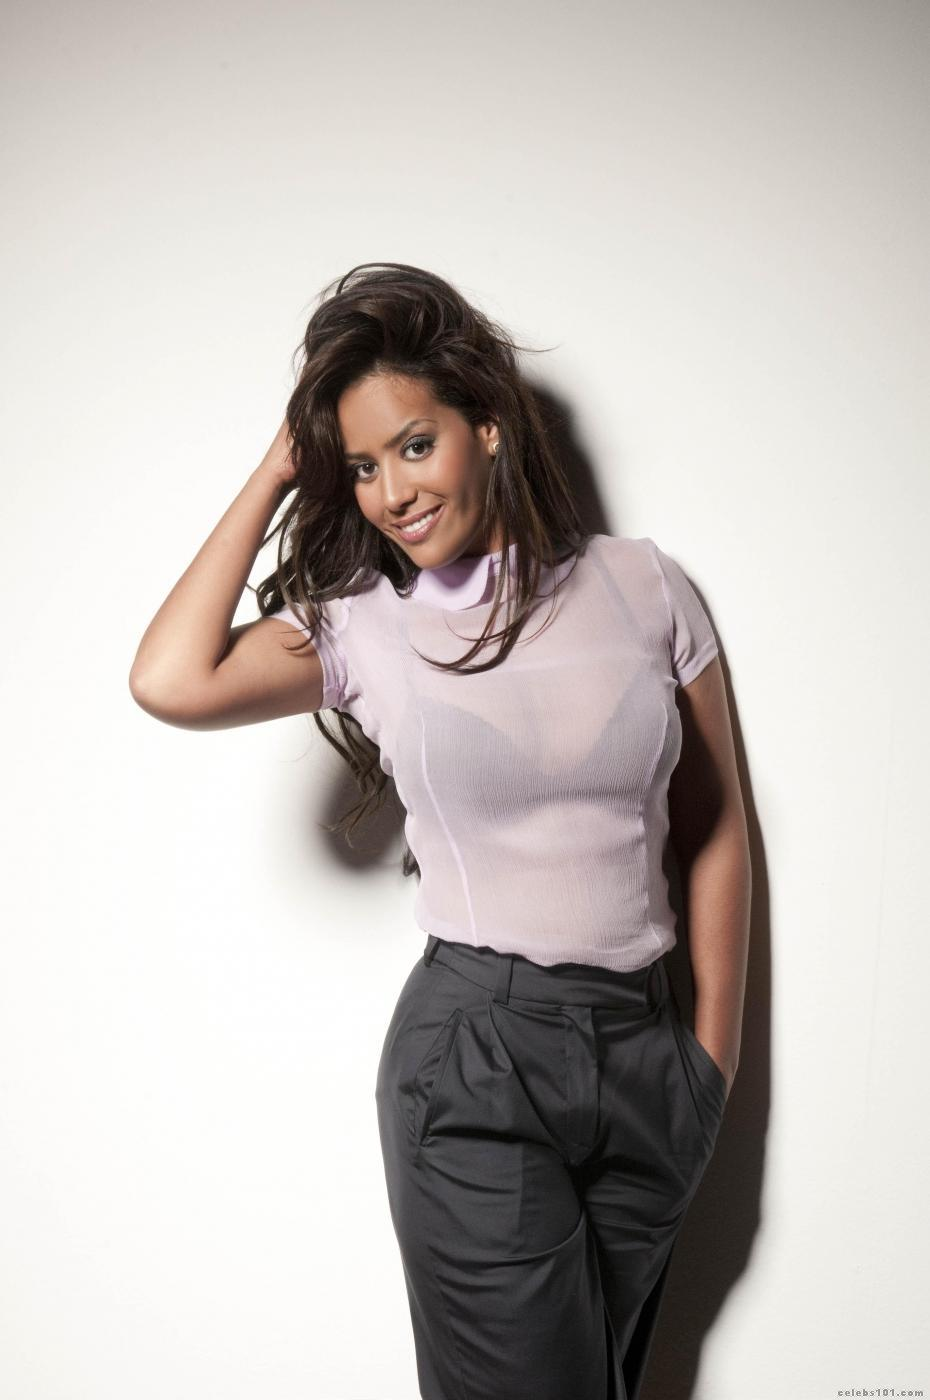 Amel Bent - High quality image size 930x1400 of Amel Bent ...